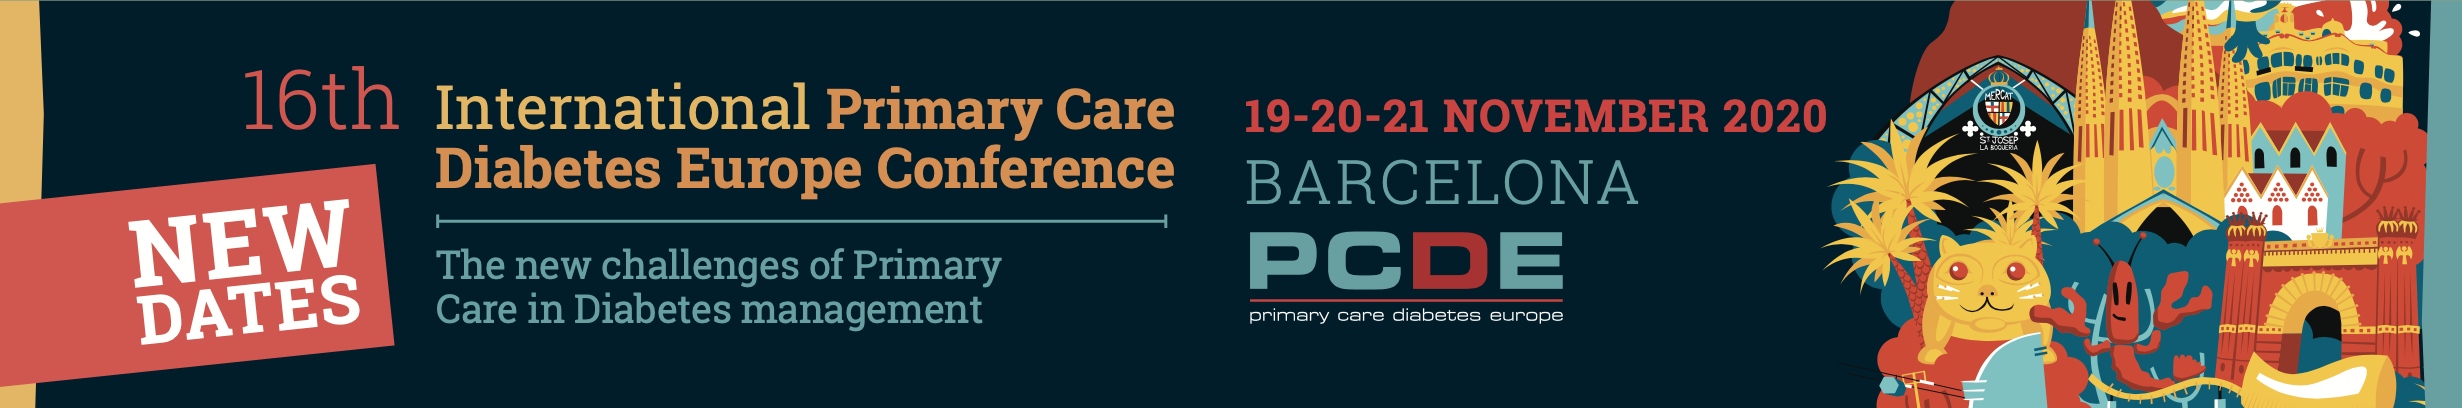 16th International Primary Care Diabetes Europe Conference